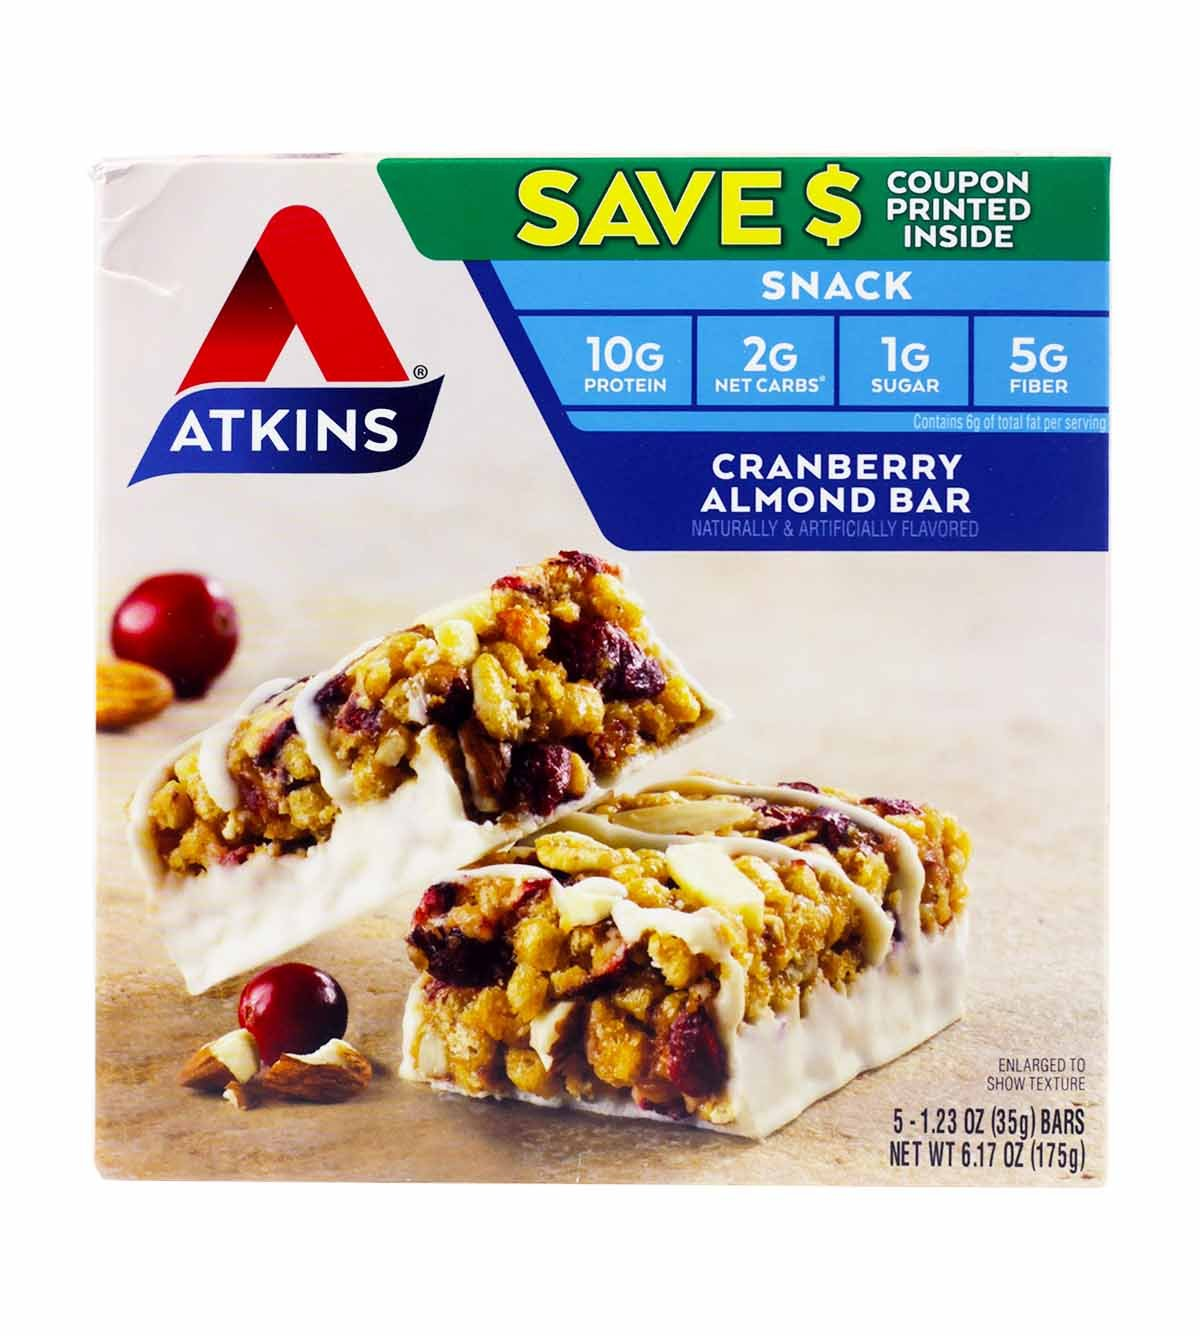 Atkins Cranberry Almond Bar 3 Boxes of 5 Bars (15 total bars)